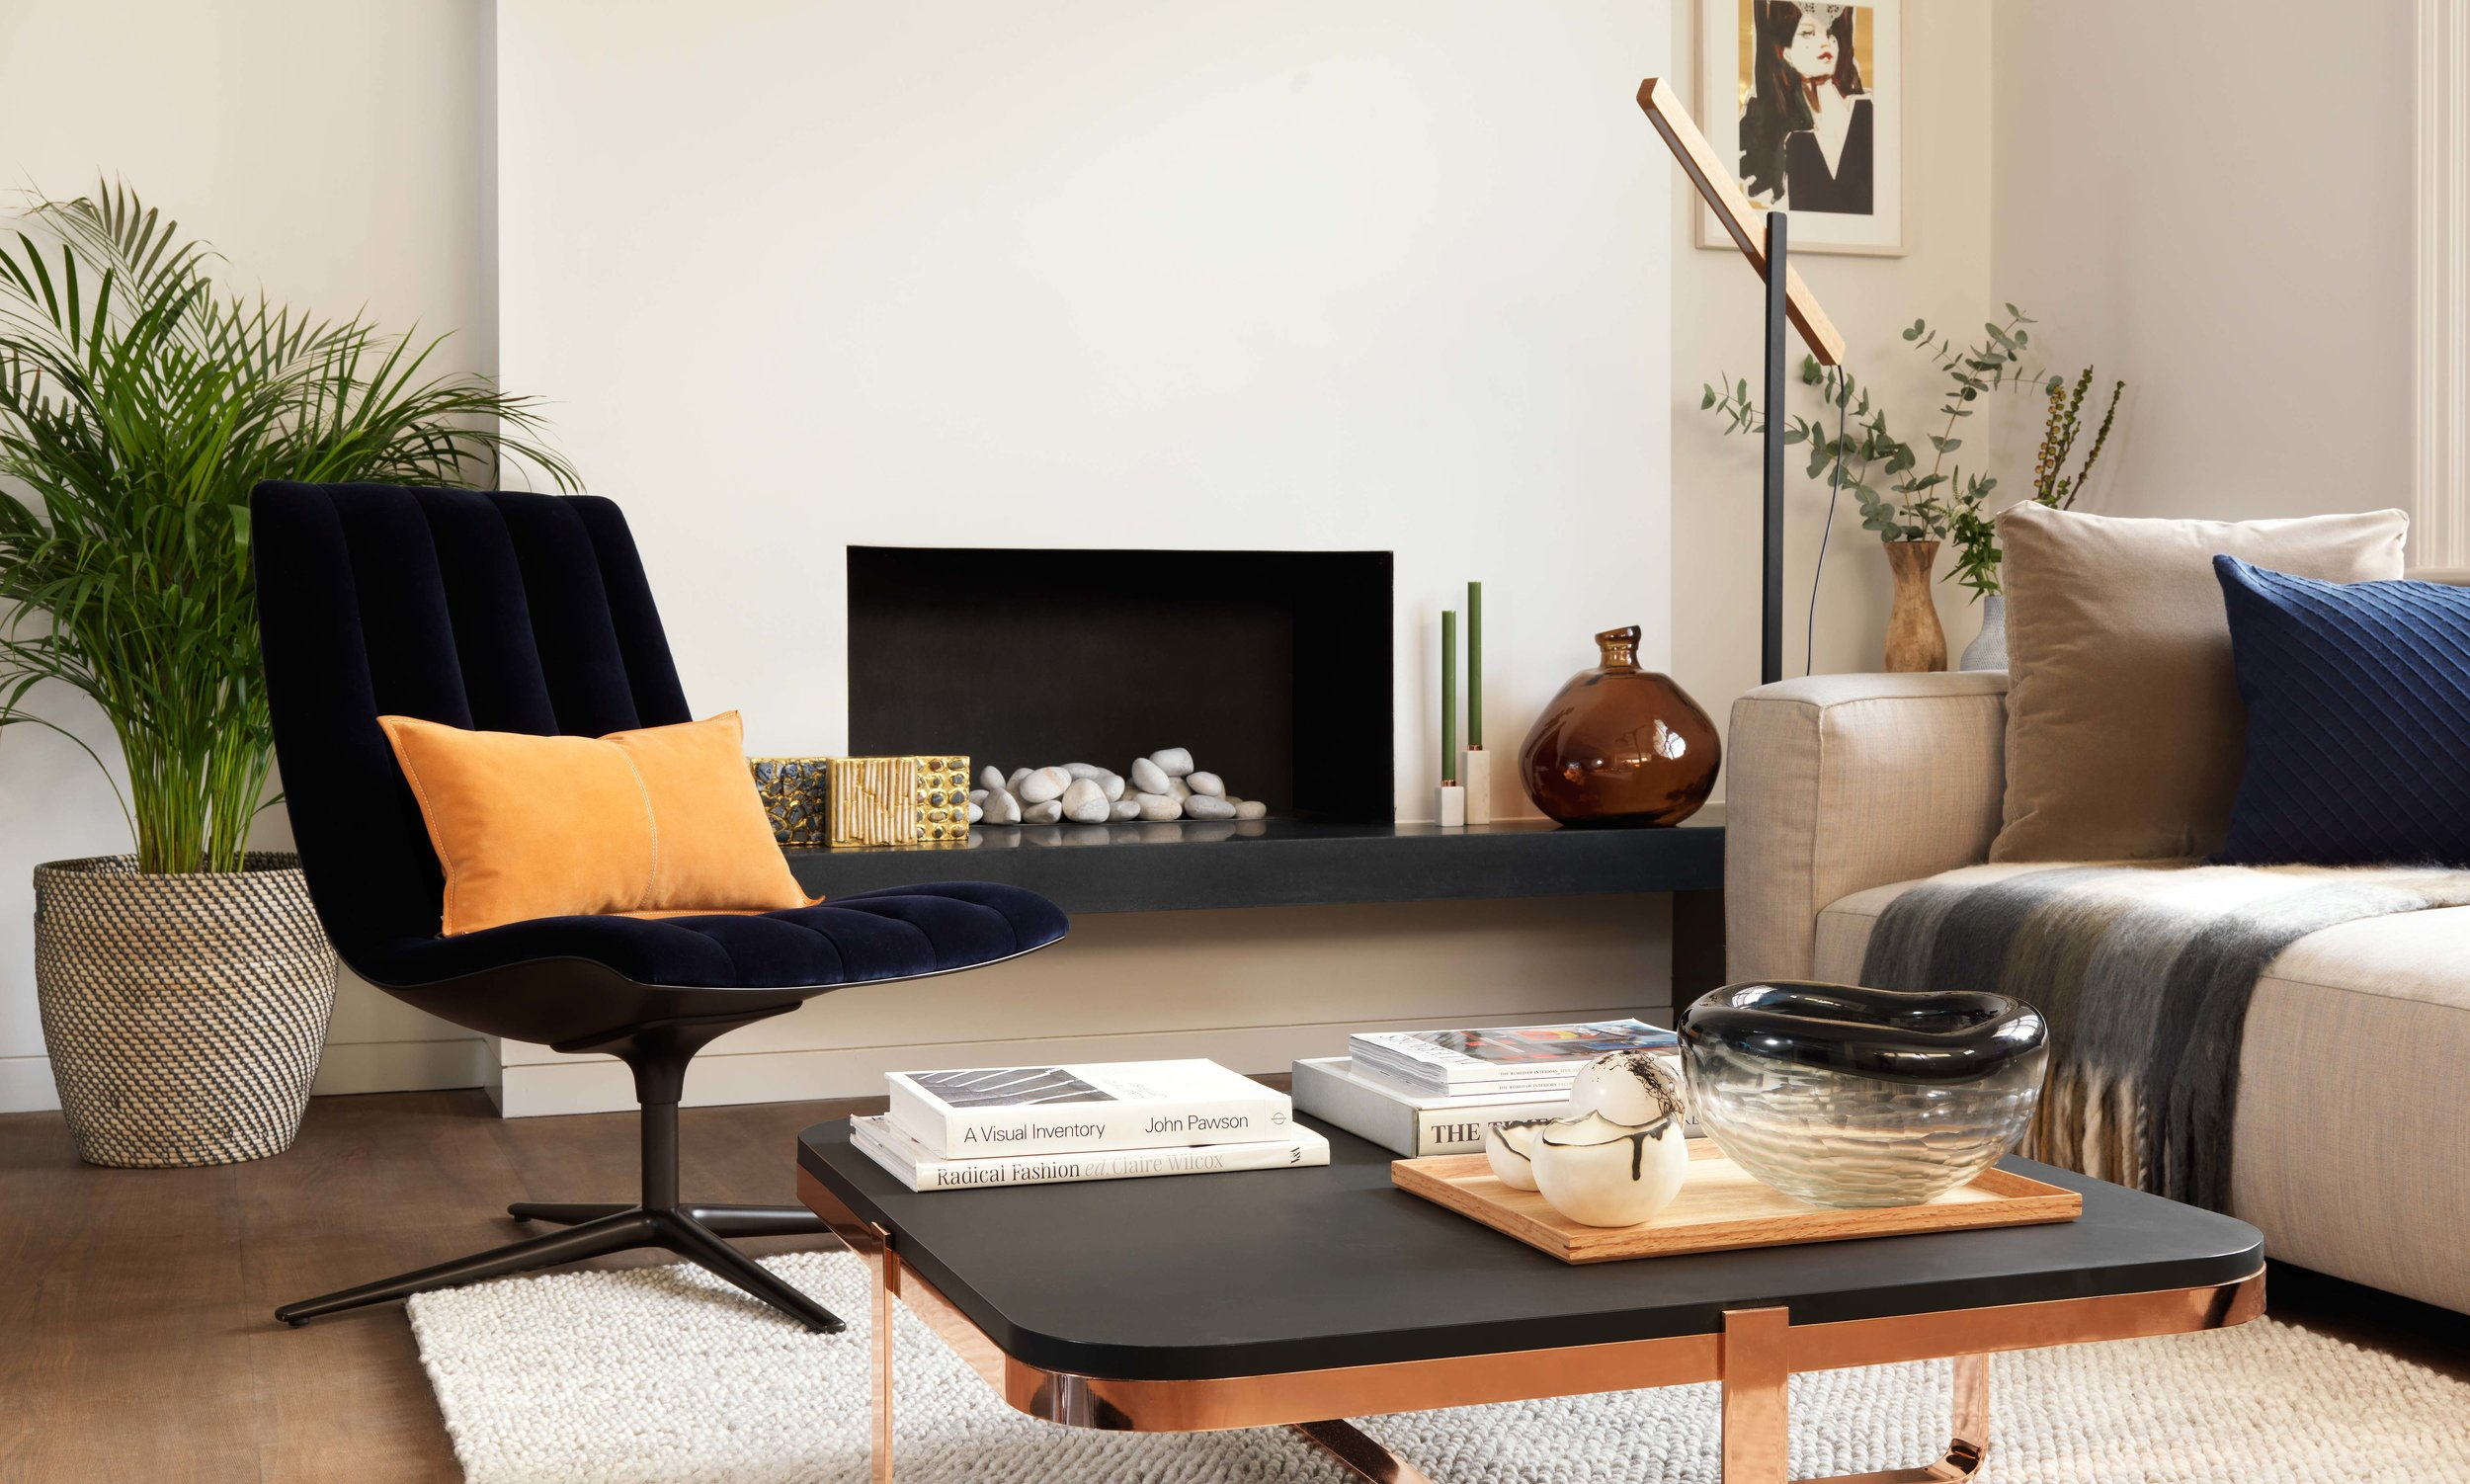 DH&Co-Interiors-Photography-CCC-2-Studio Clement.jpg